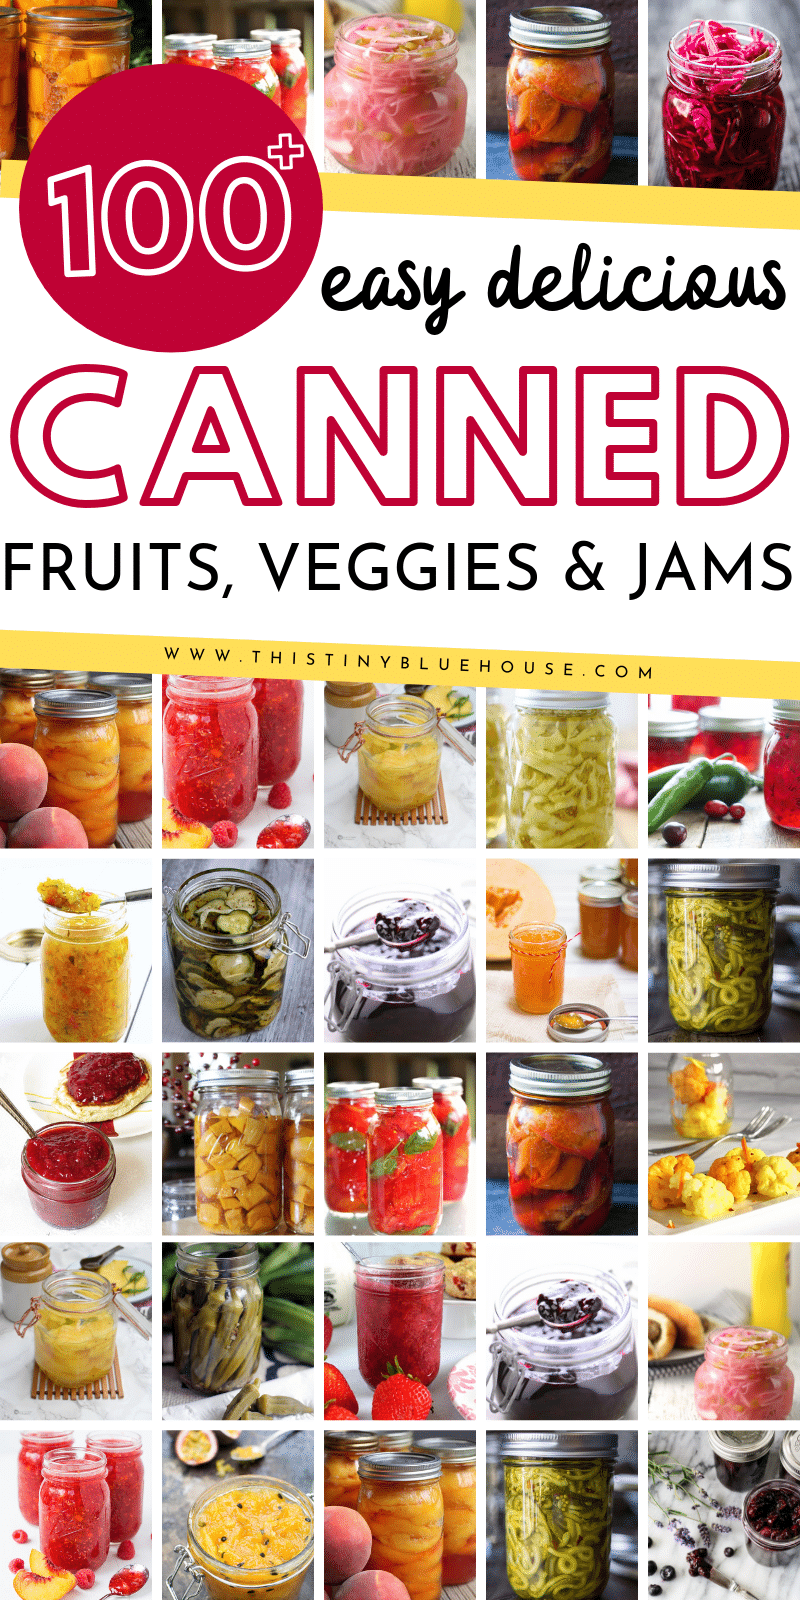 here are over 100 canning recipes to make the most of summer produce. This super comprehensive canning recipe guide includes fruits, veggies and chutney recipes for you to try. #canning #canningrecipes #canningrecipeseasy #canningrecipesvegetables #canningrecipesfruits #canningrecipejams #canningrecipesideas #canningjamrecipes